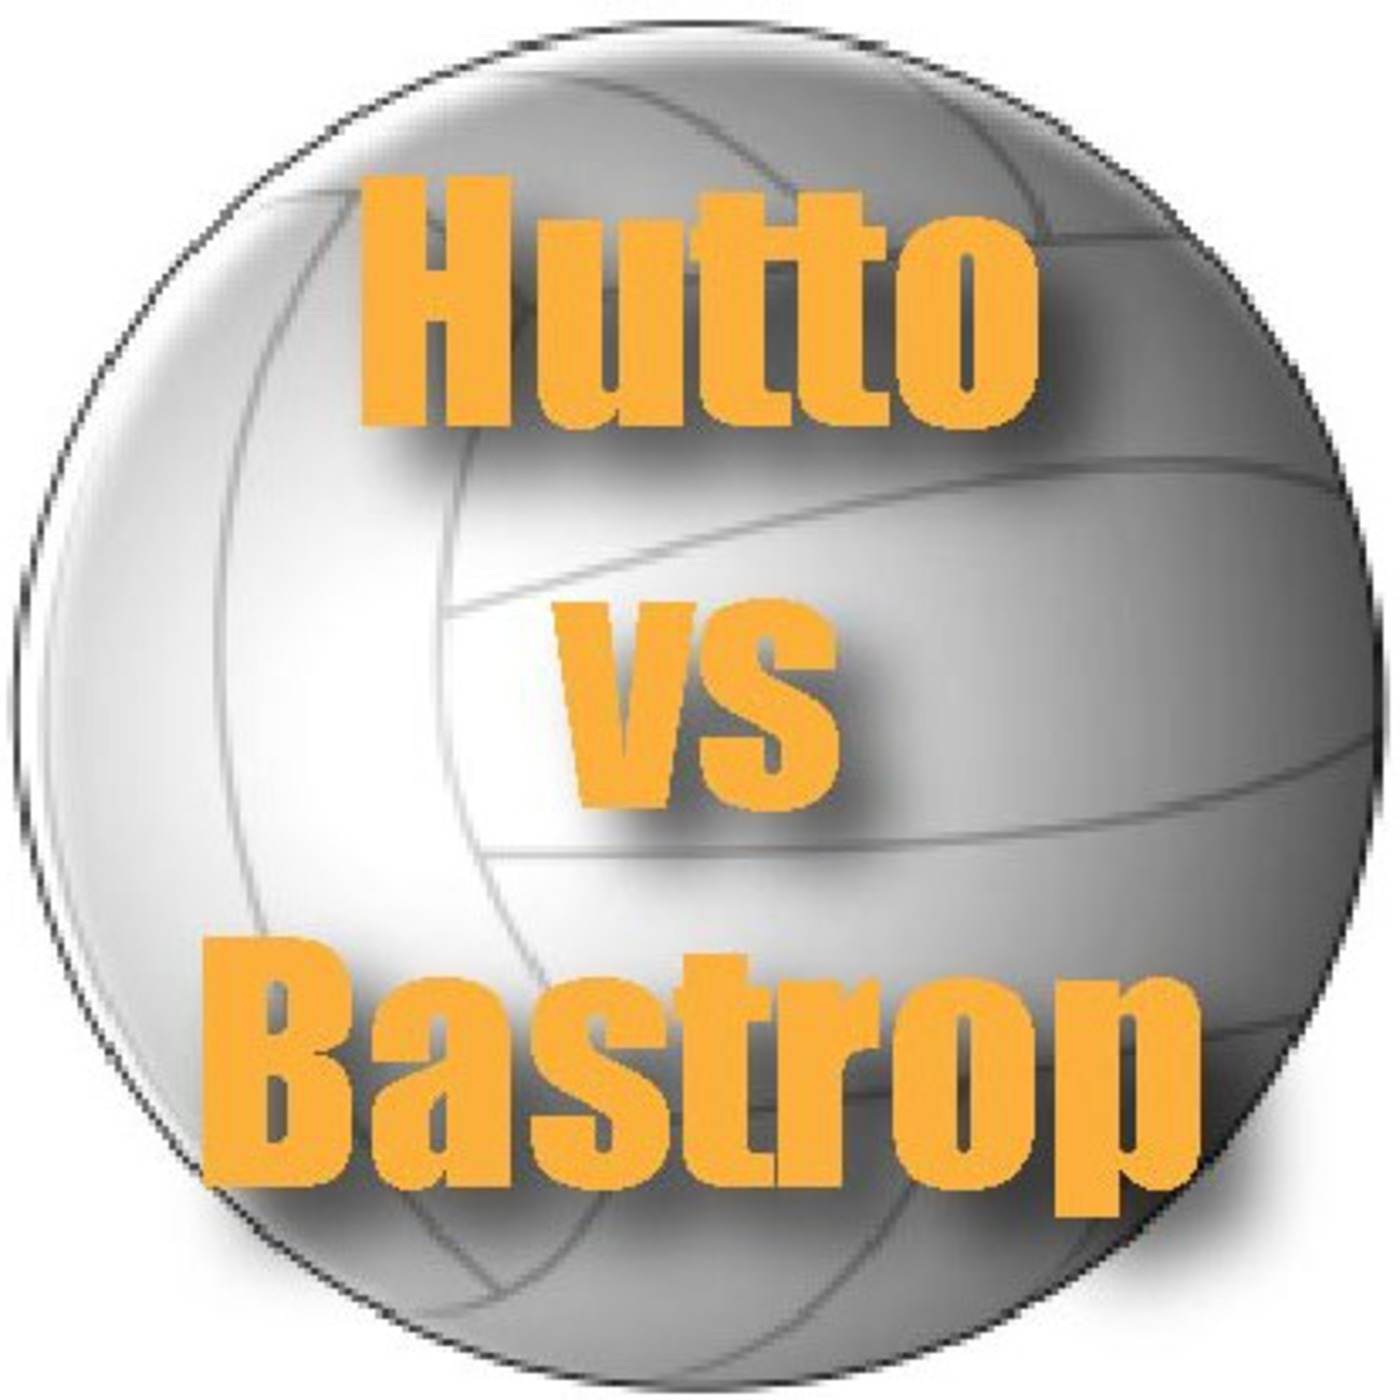 Volleyball: Hutto vs Bastrop